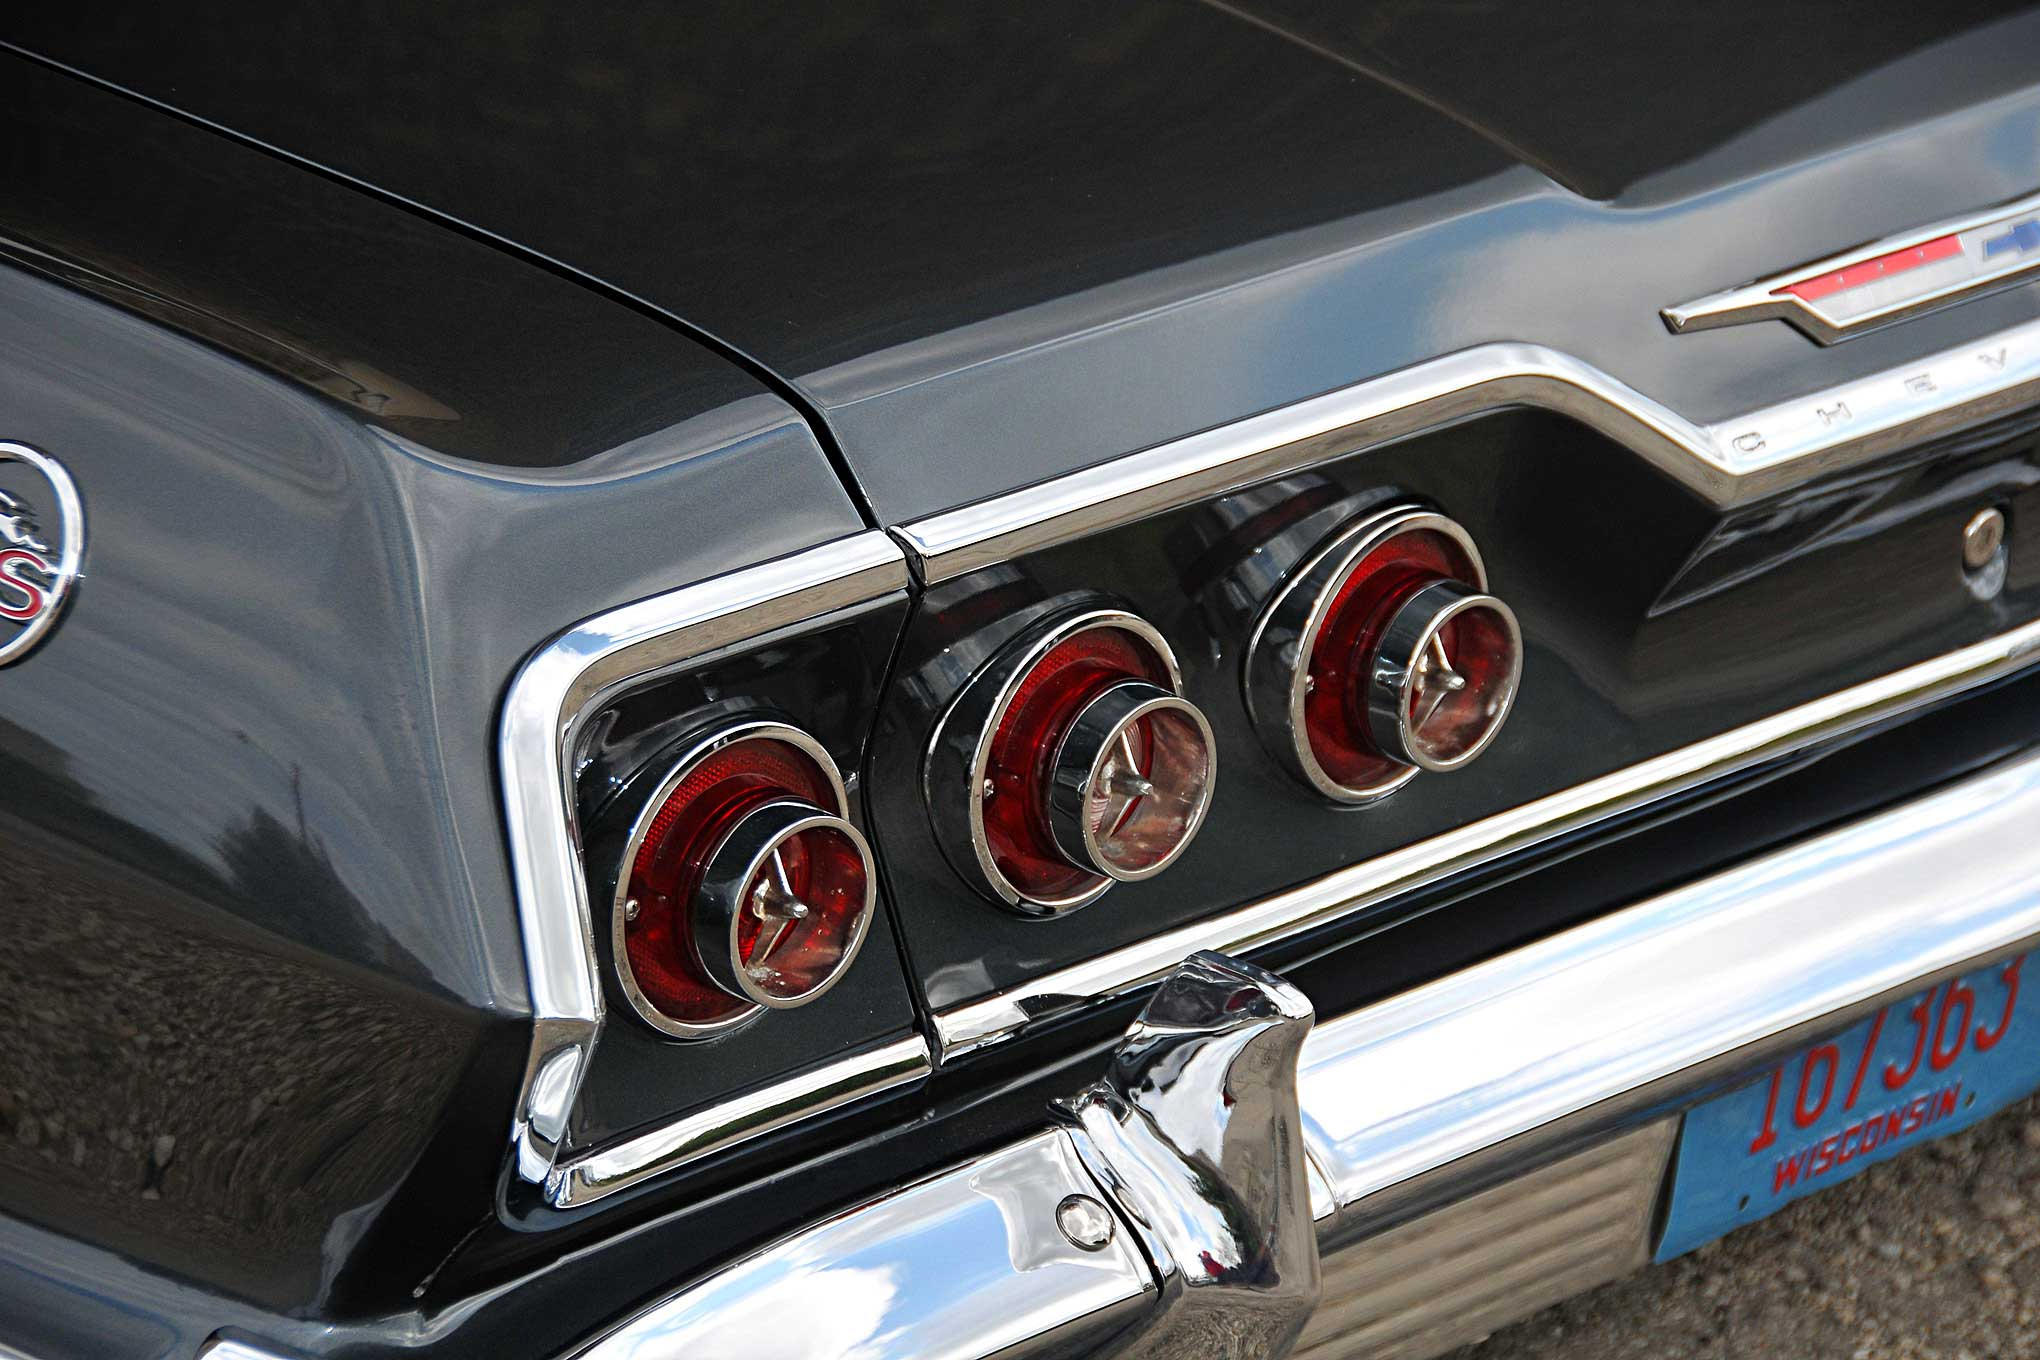 1963 impala tail light wiring diagram hopkins 6 way chevrolet ss in the shadows